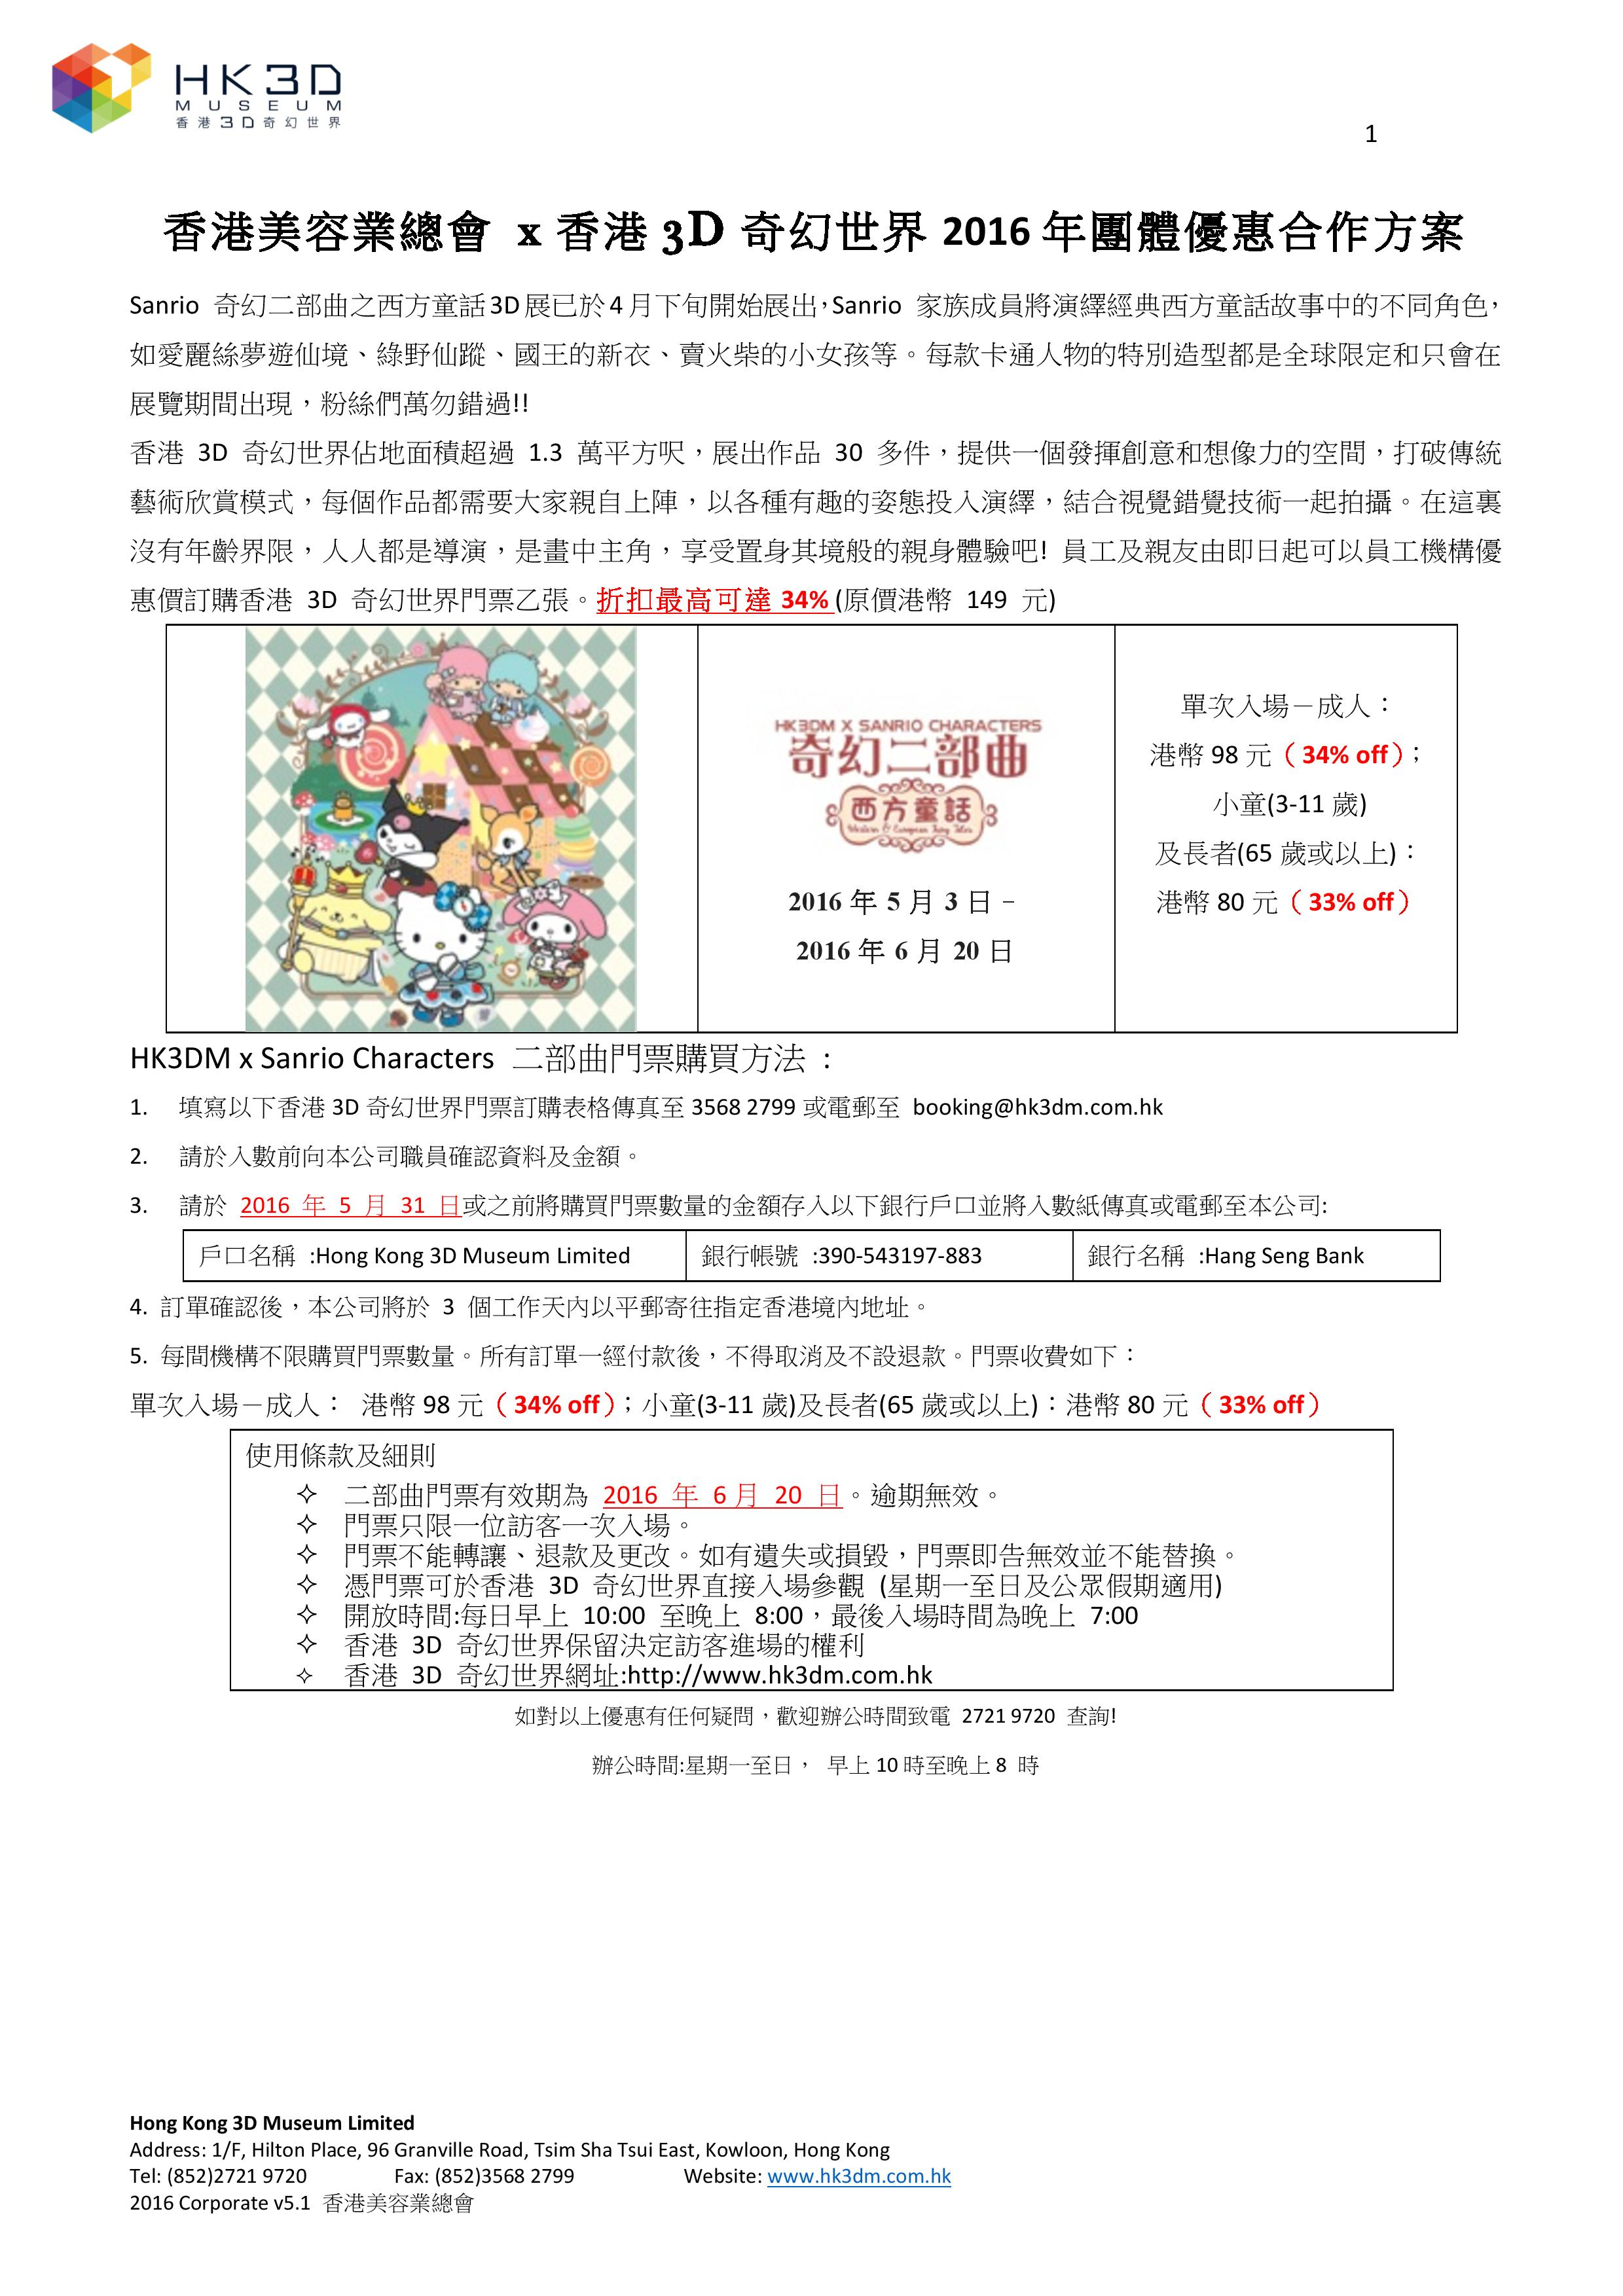 香港美容業總會 x HK3DM 2016 Corporate Order Form - Chi_v5-1 P1